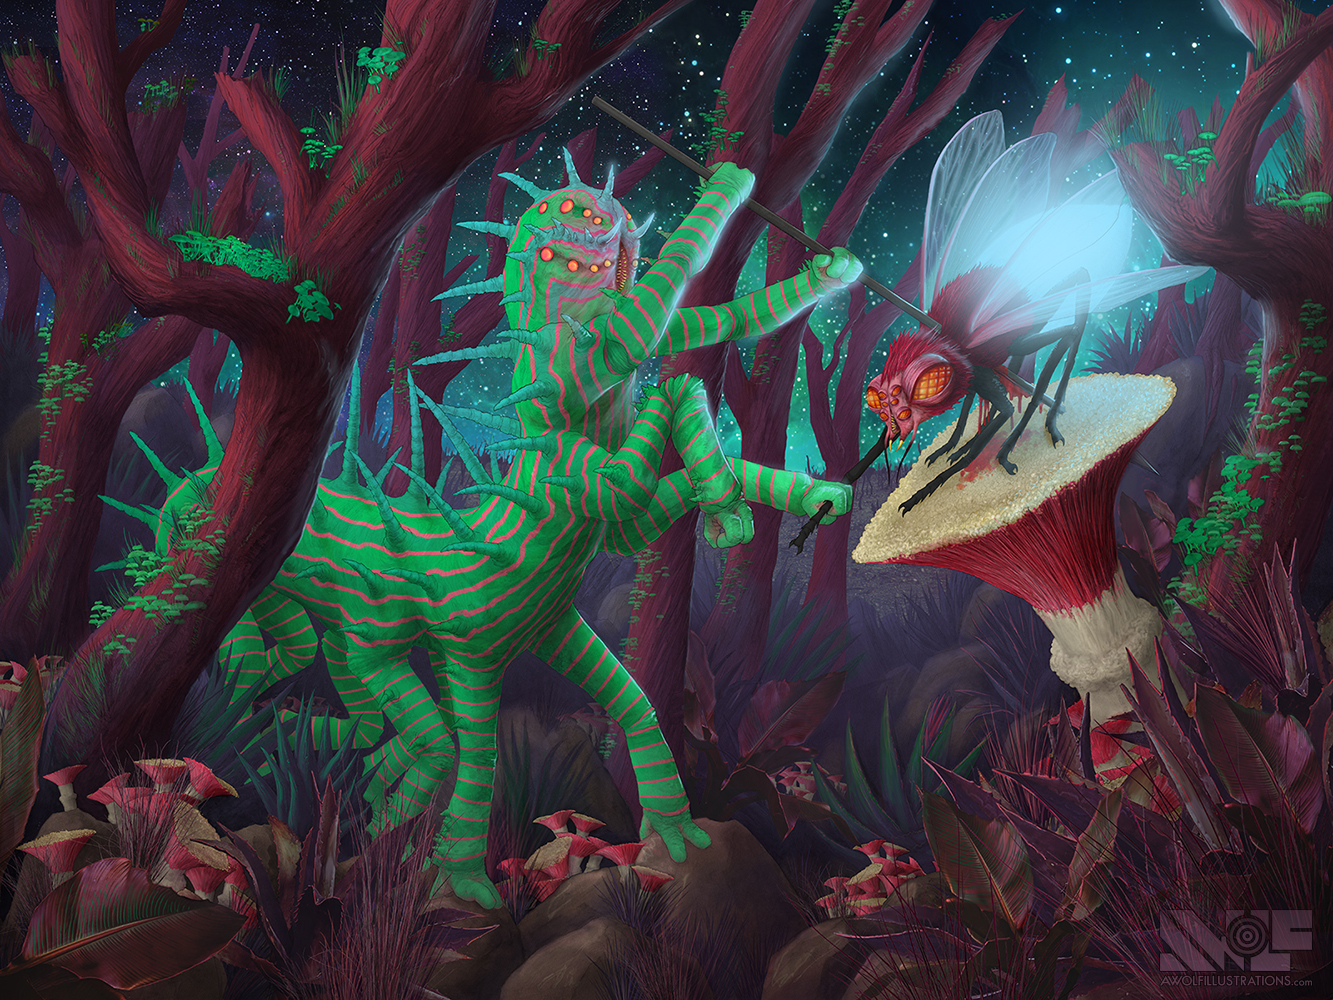 a coloured digital photoshop illustration of a hunt on a space planet a giant demon caterpillar attacking a fire fly with a spear